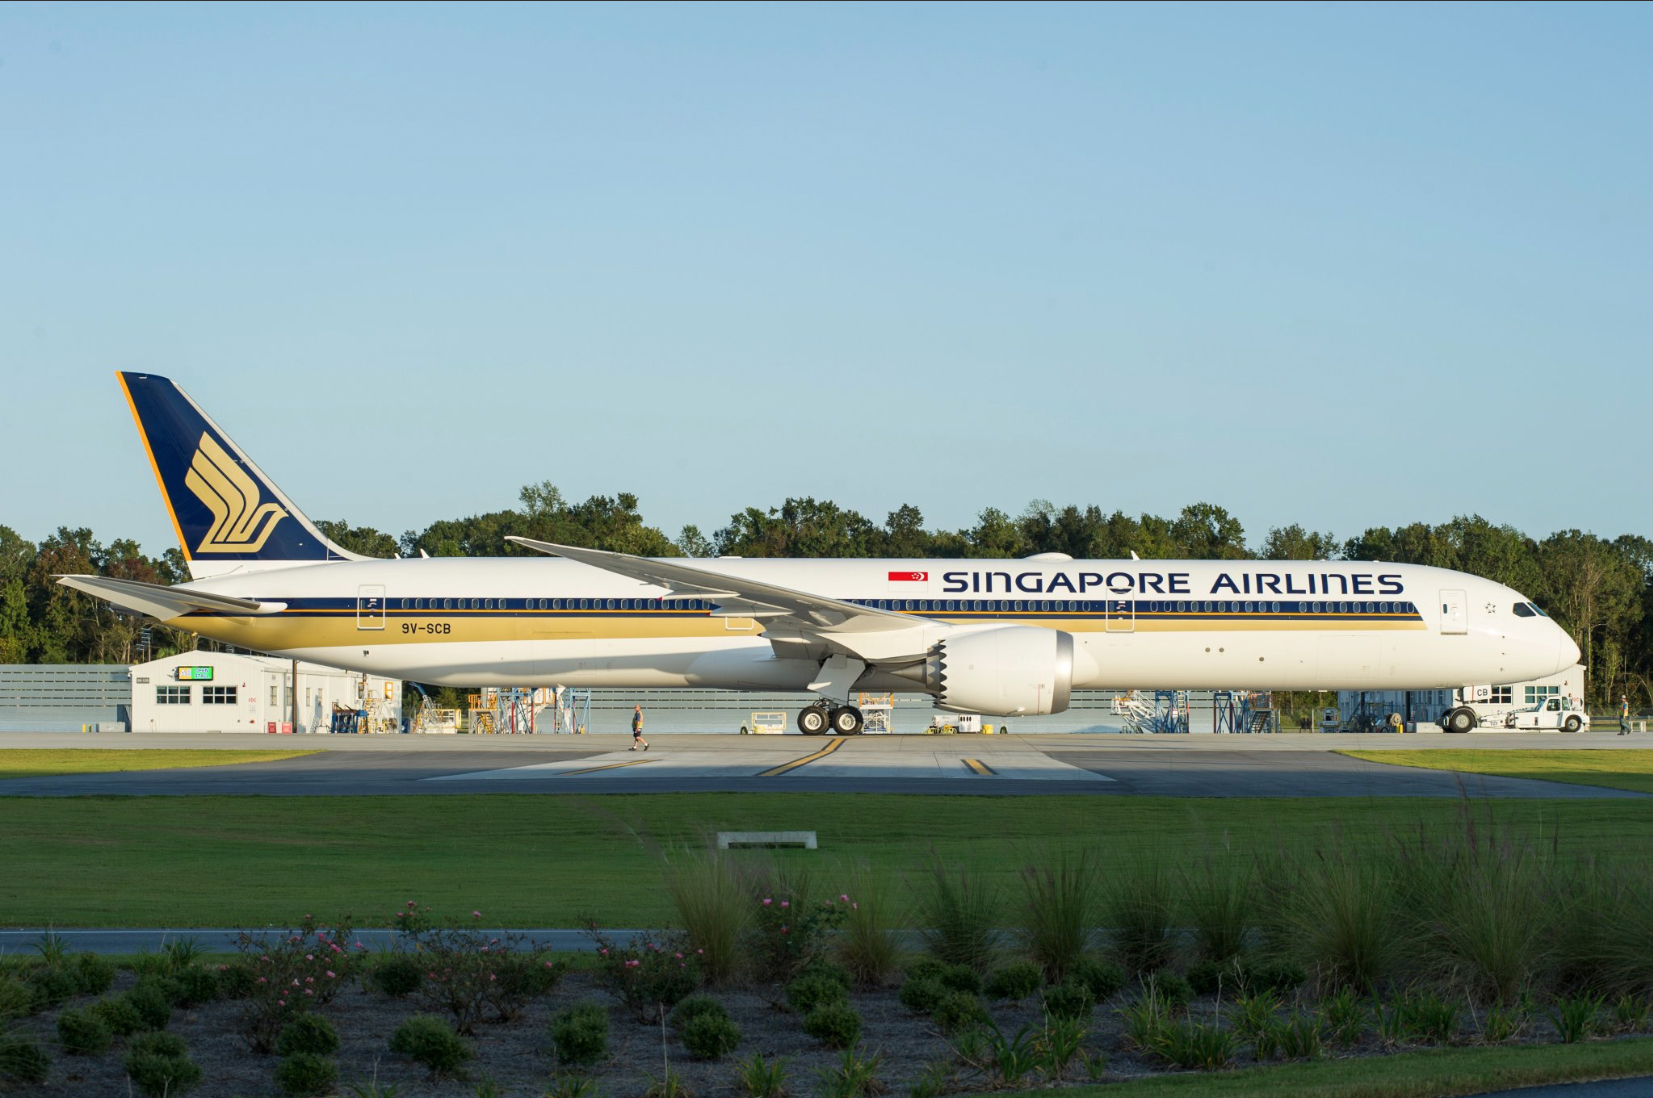 Singapore Airlines has grounded over half its Boeing 787-10 fleet